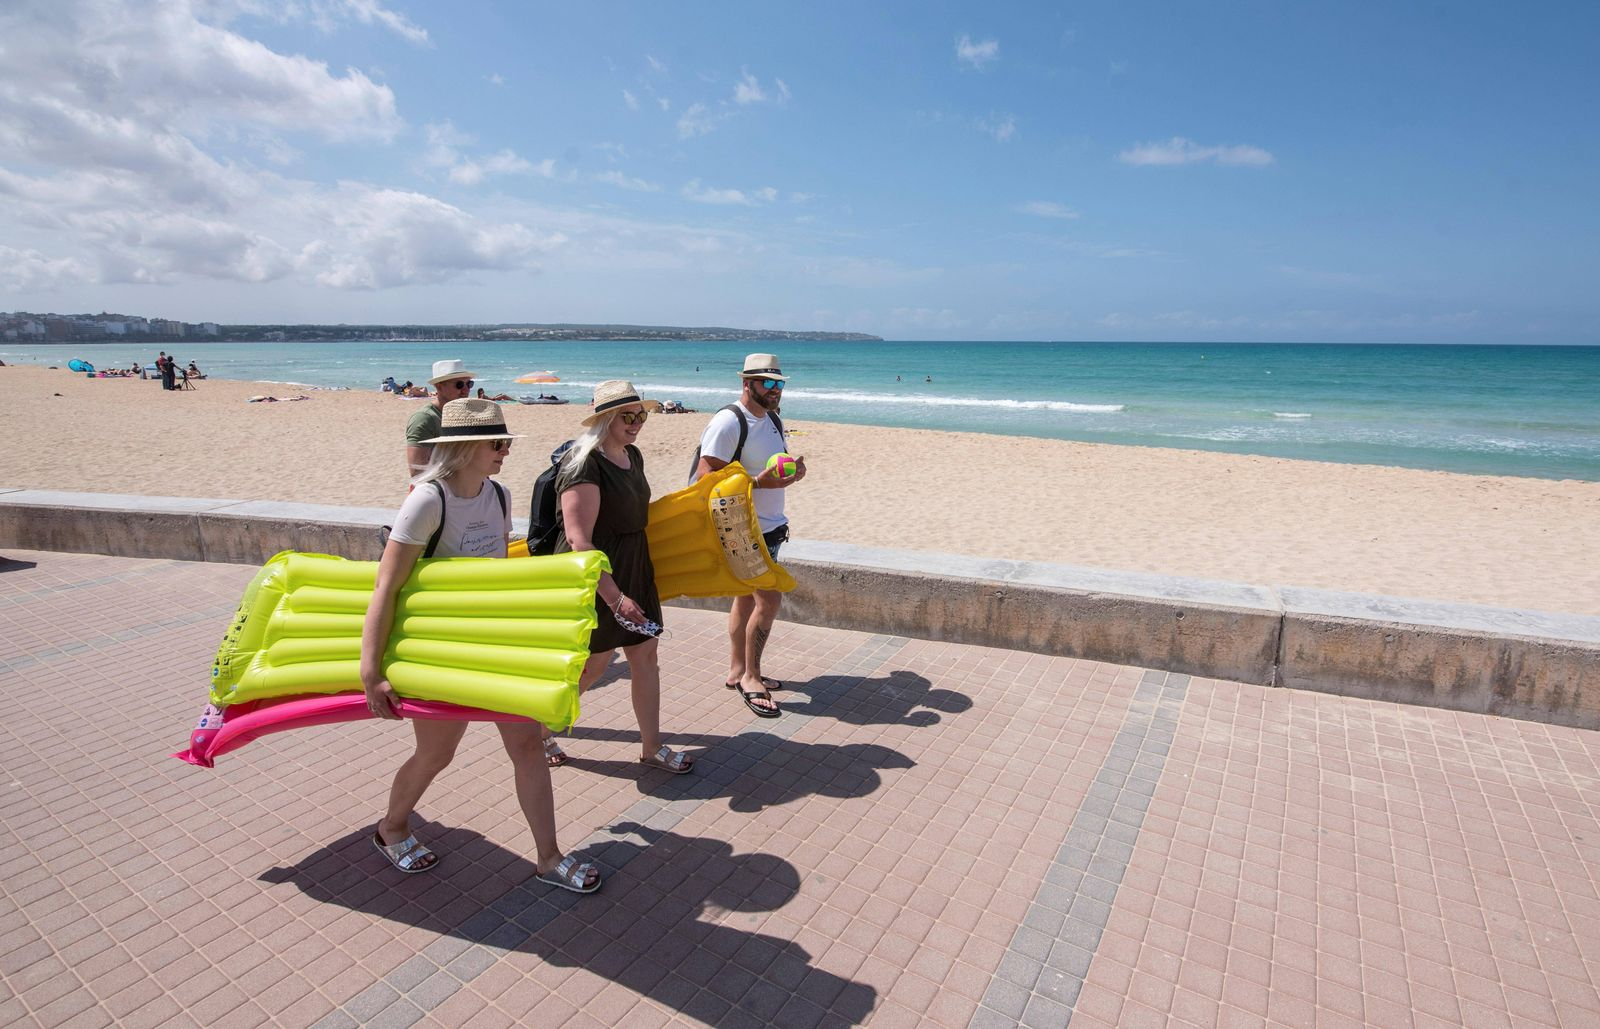 German tourists enjoy the sunny warm weather at a beach in Palma de Majorca, Spain, 16 June 2020. Up to 10,900 vacatione